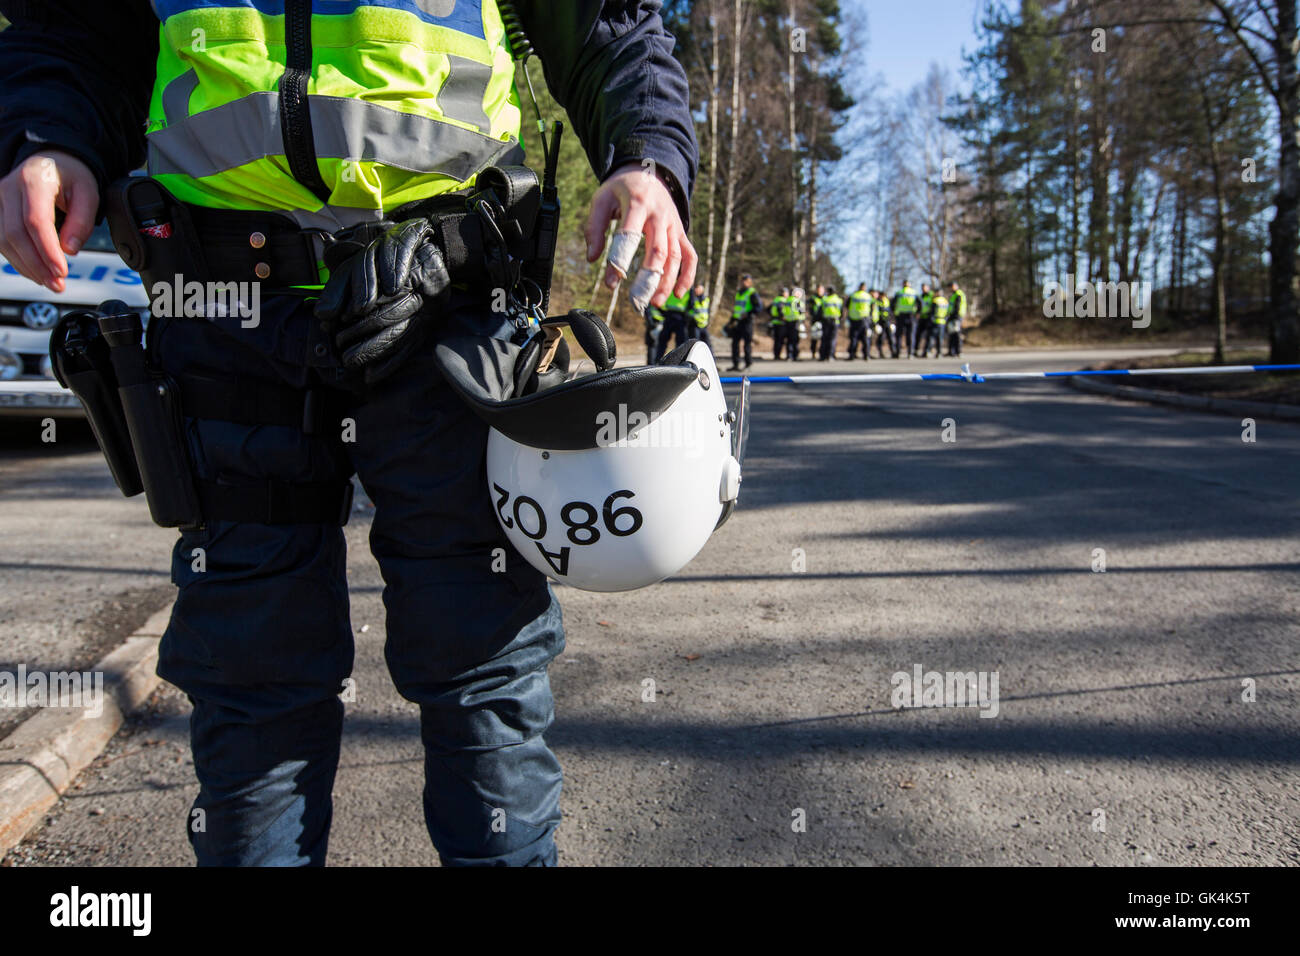 Riot police are prepared before a demonstration. - Stock Image